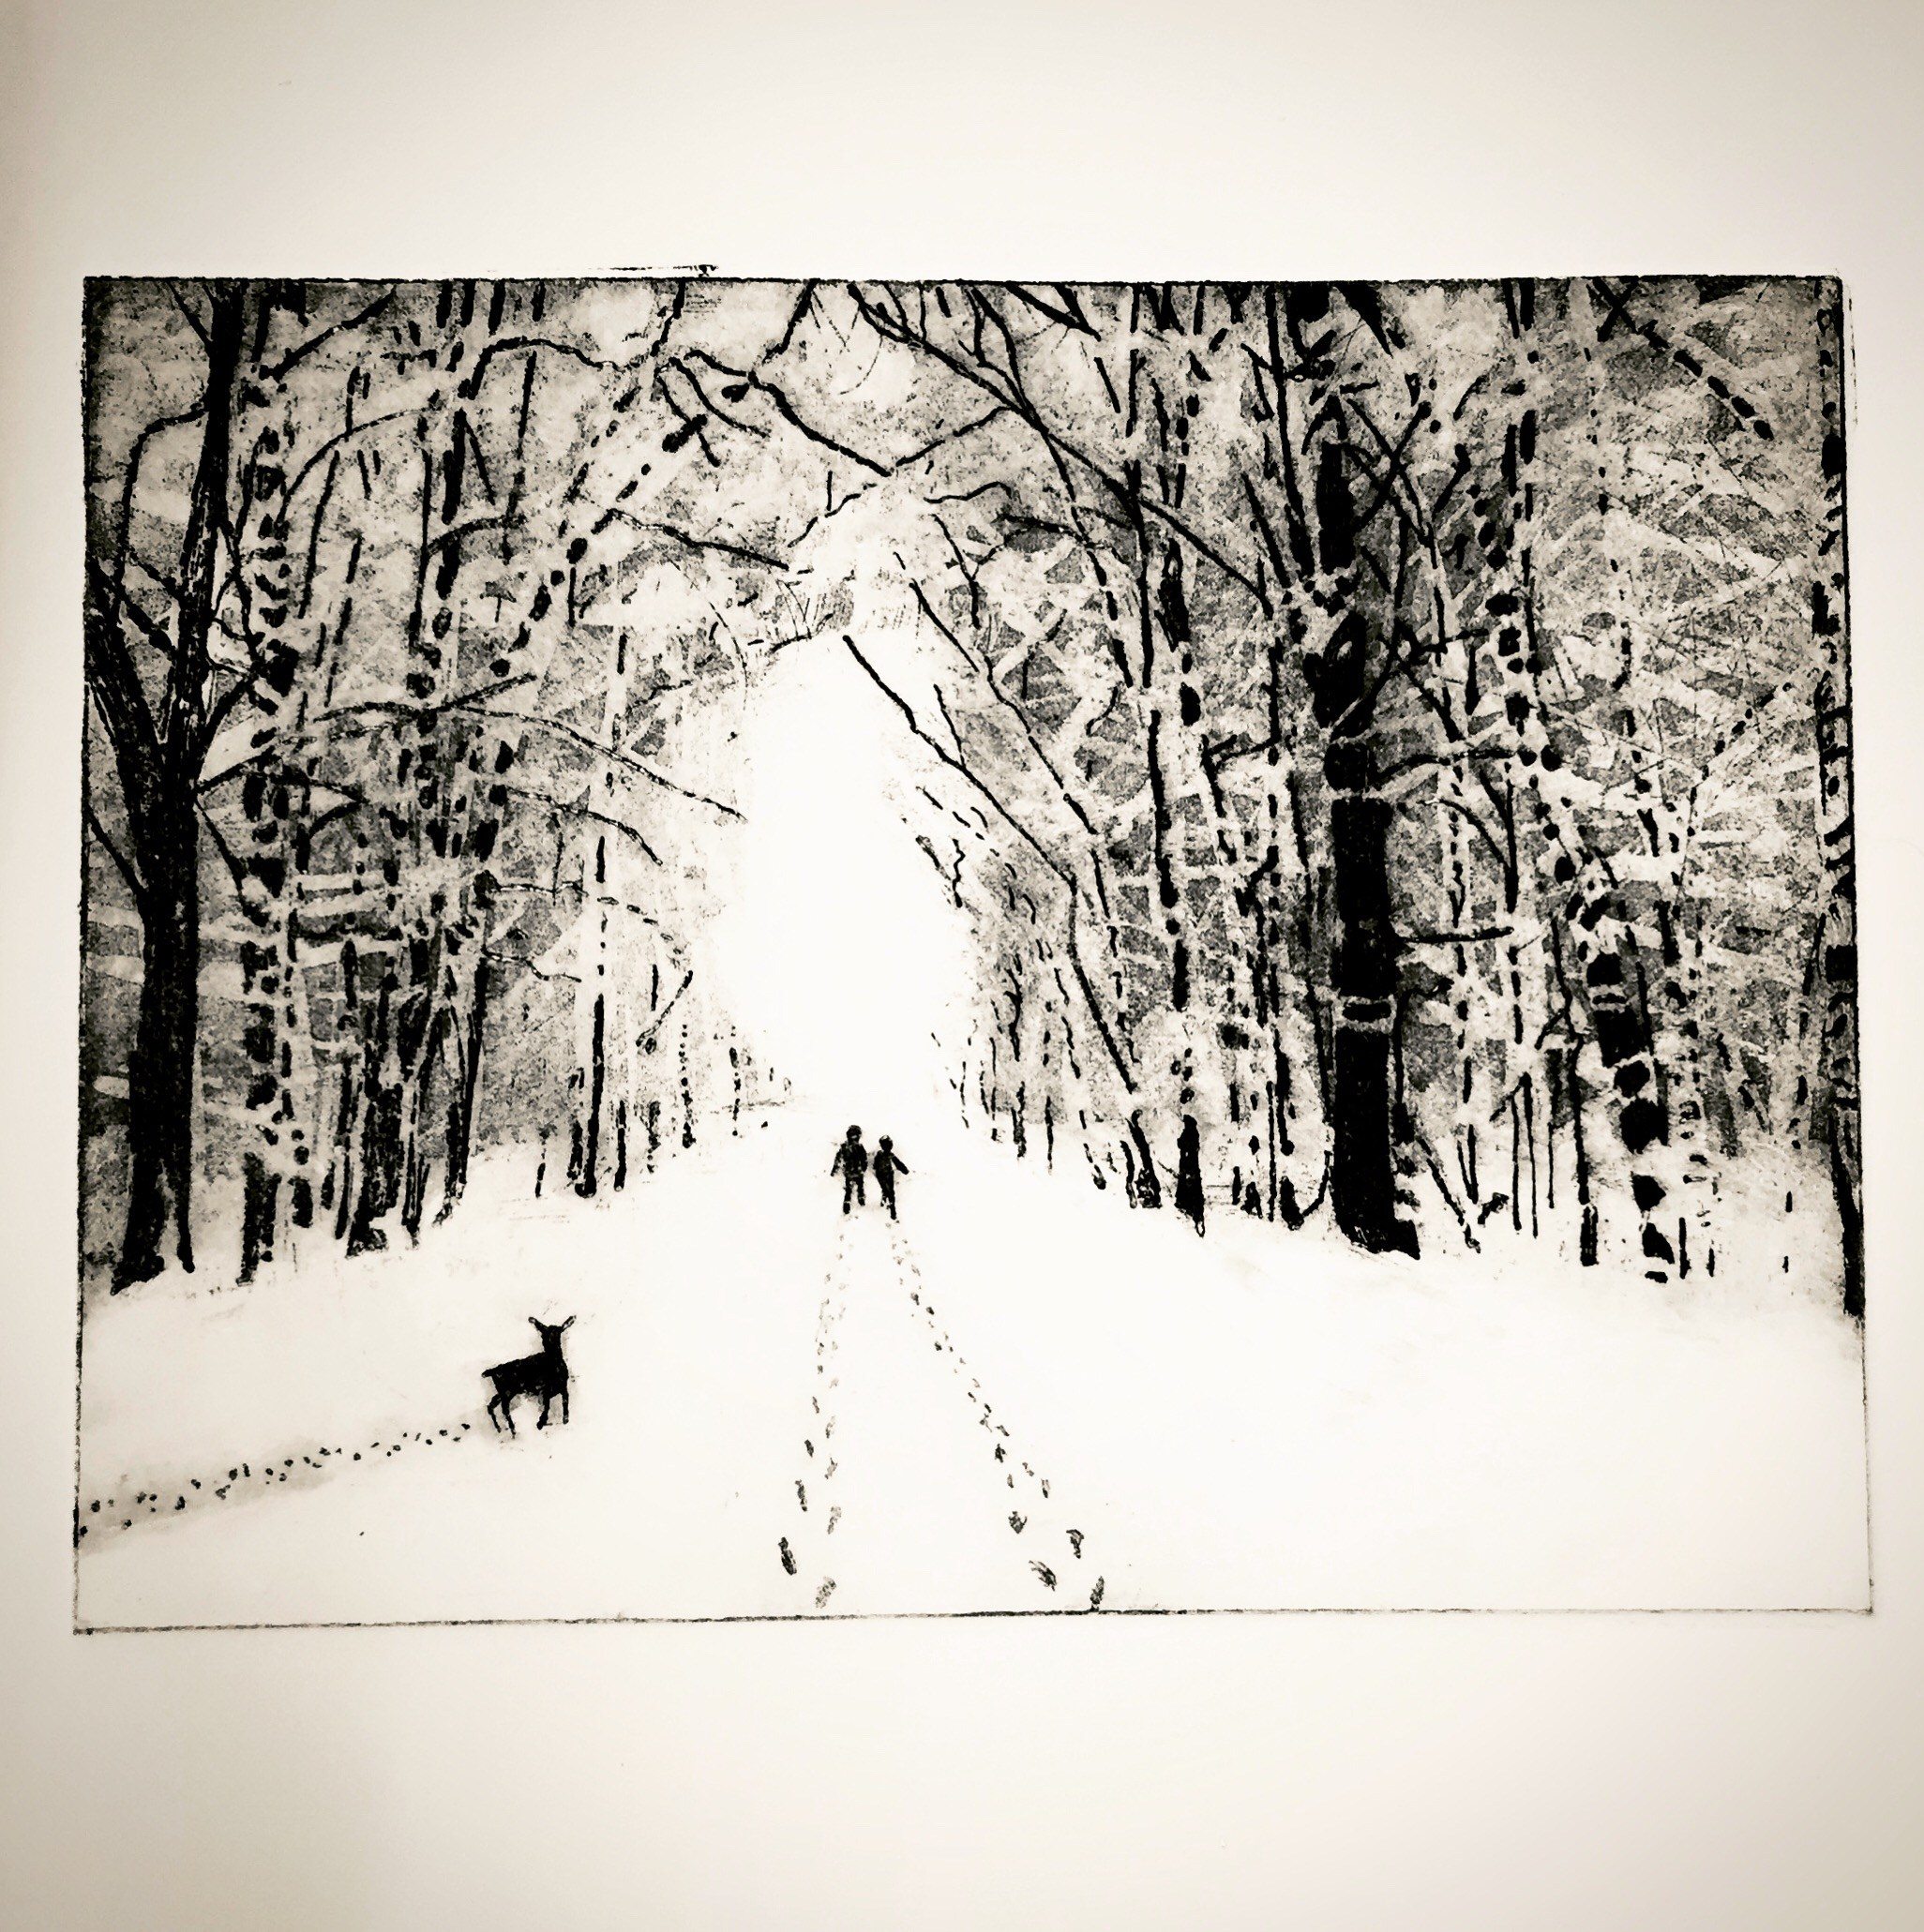 Artwork, monochrome etching by Helen Arthur